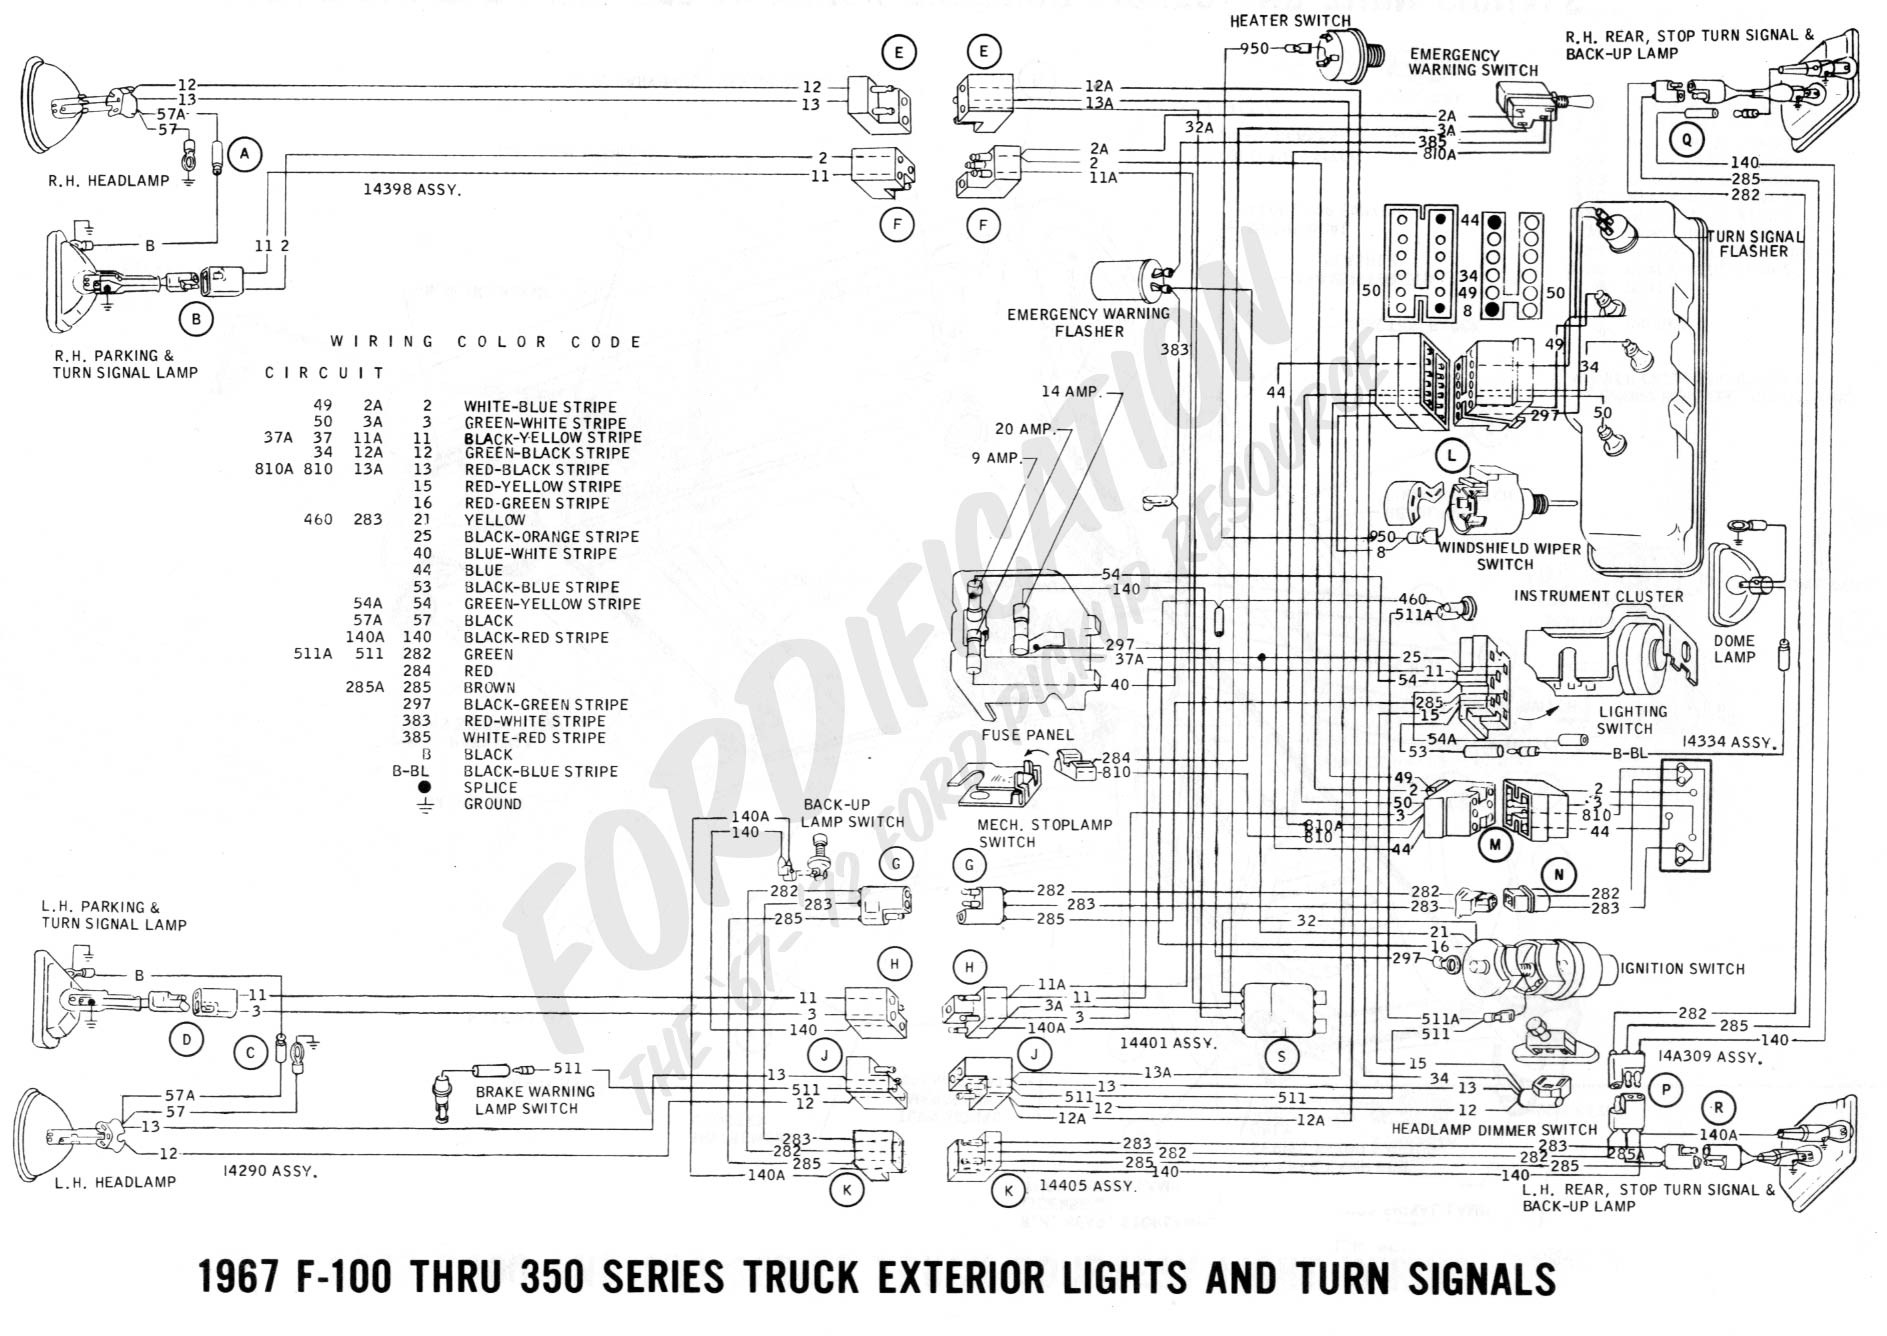 1983 Toyota Pickup Wiring Diagram Amazing 1986 Ford Truck Technical Drawings And Schematics Section H Of